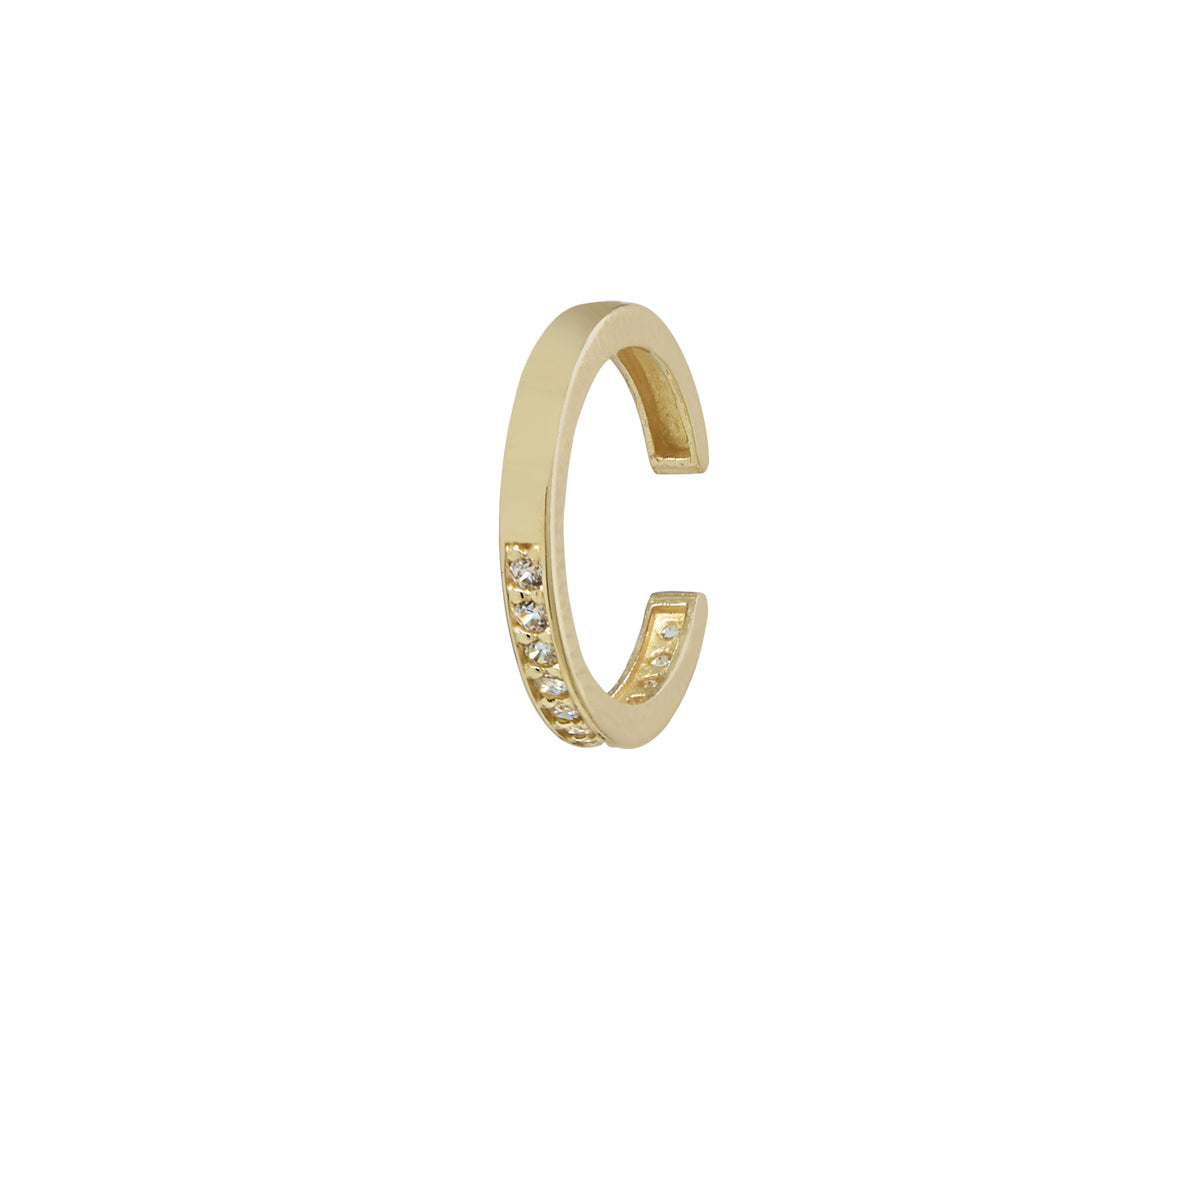 10k Solid Gold CZ Channel Middle Ear Cuff